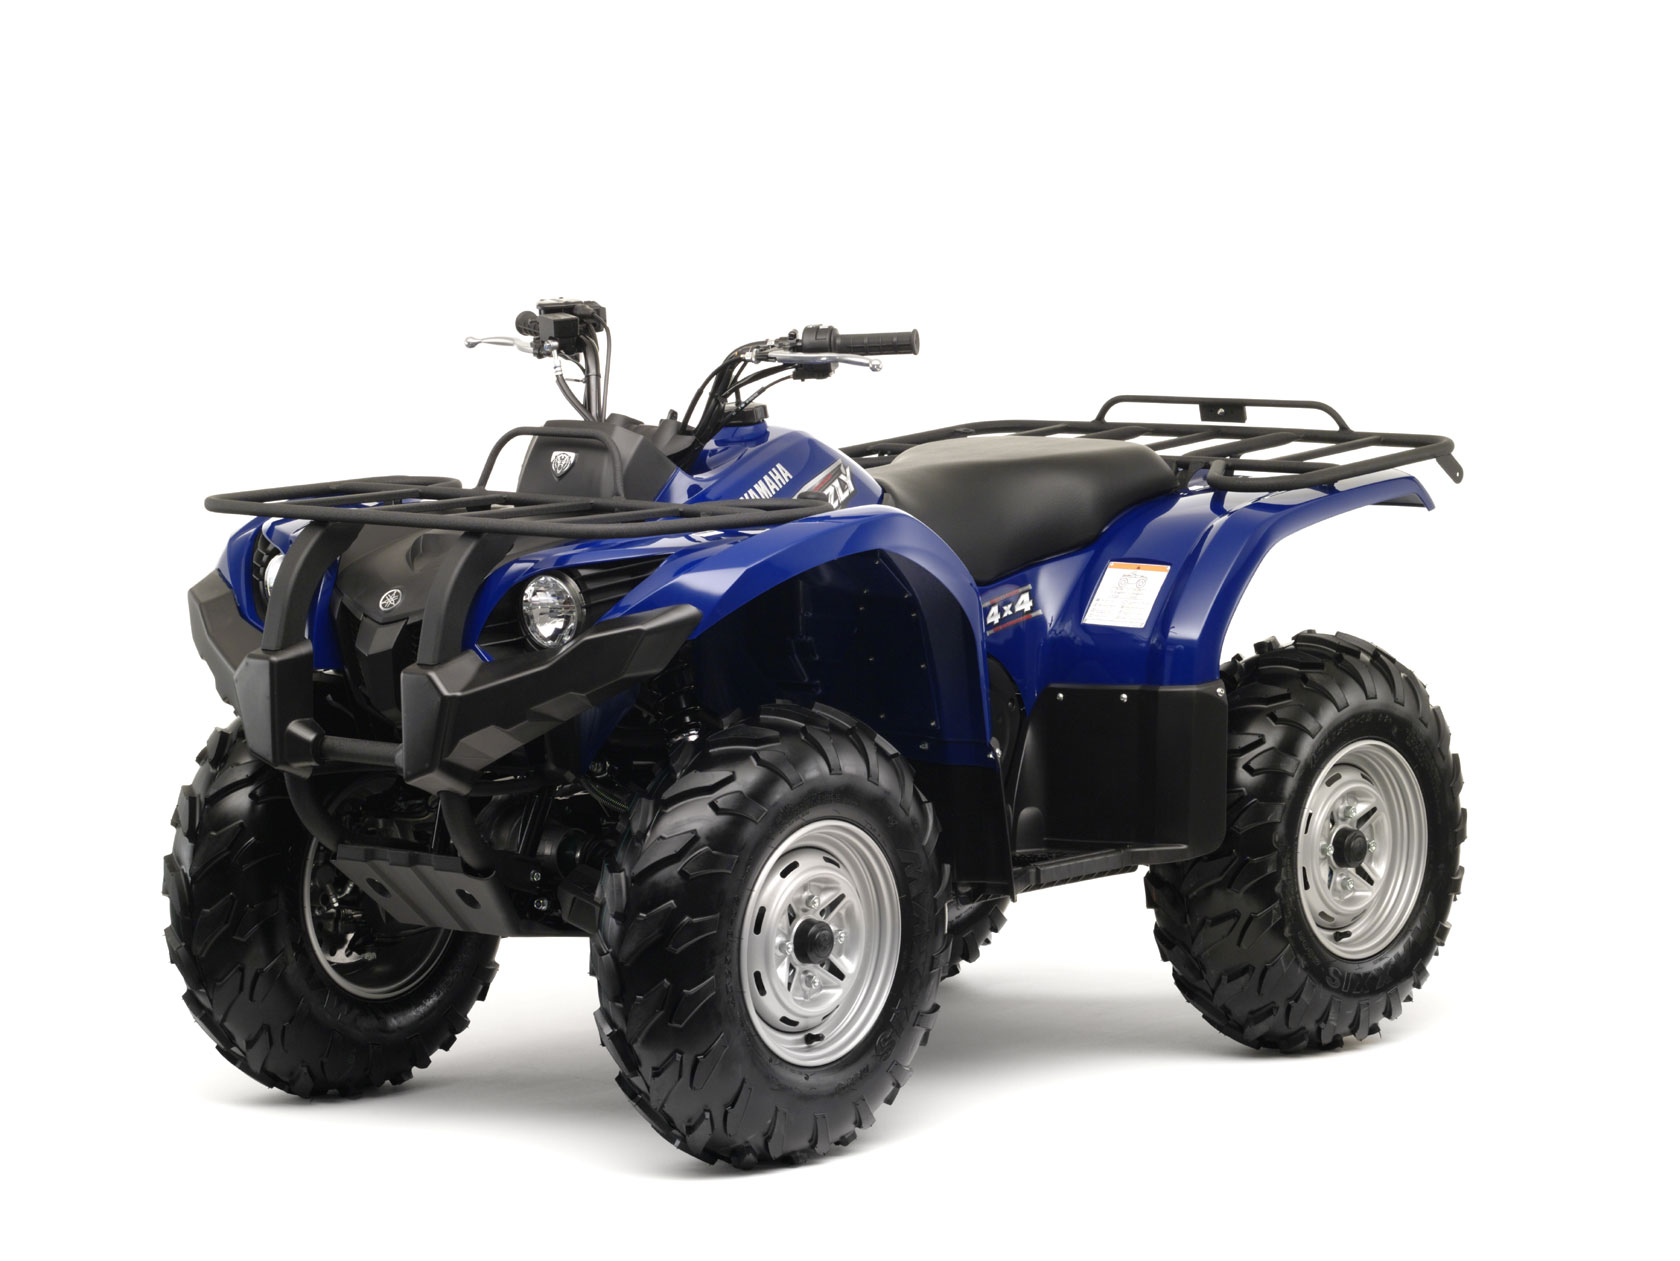 2011 Yamaha Grizzly 550 Manual